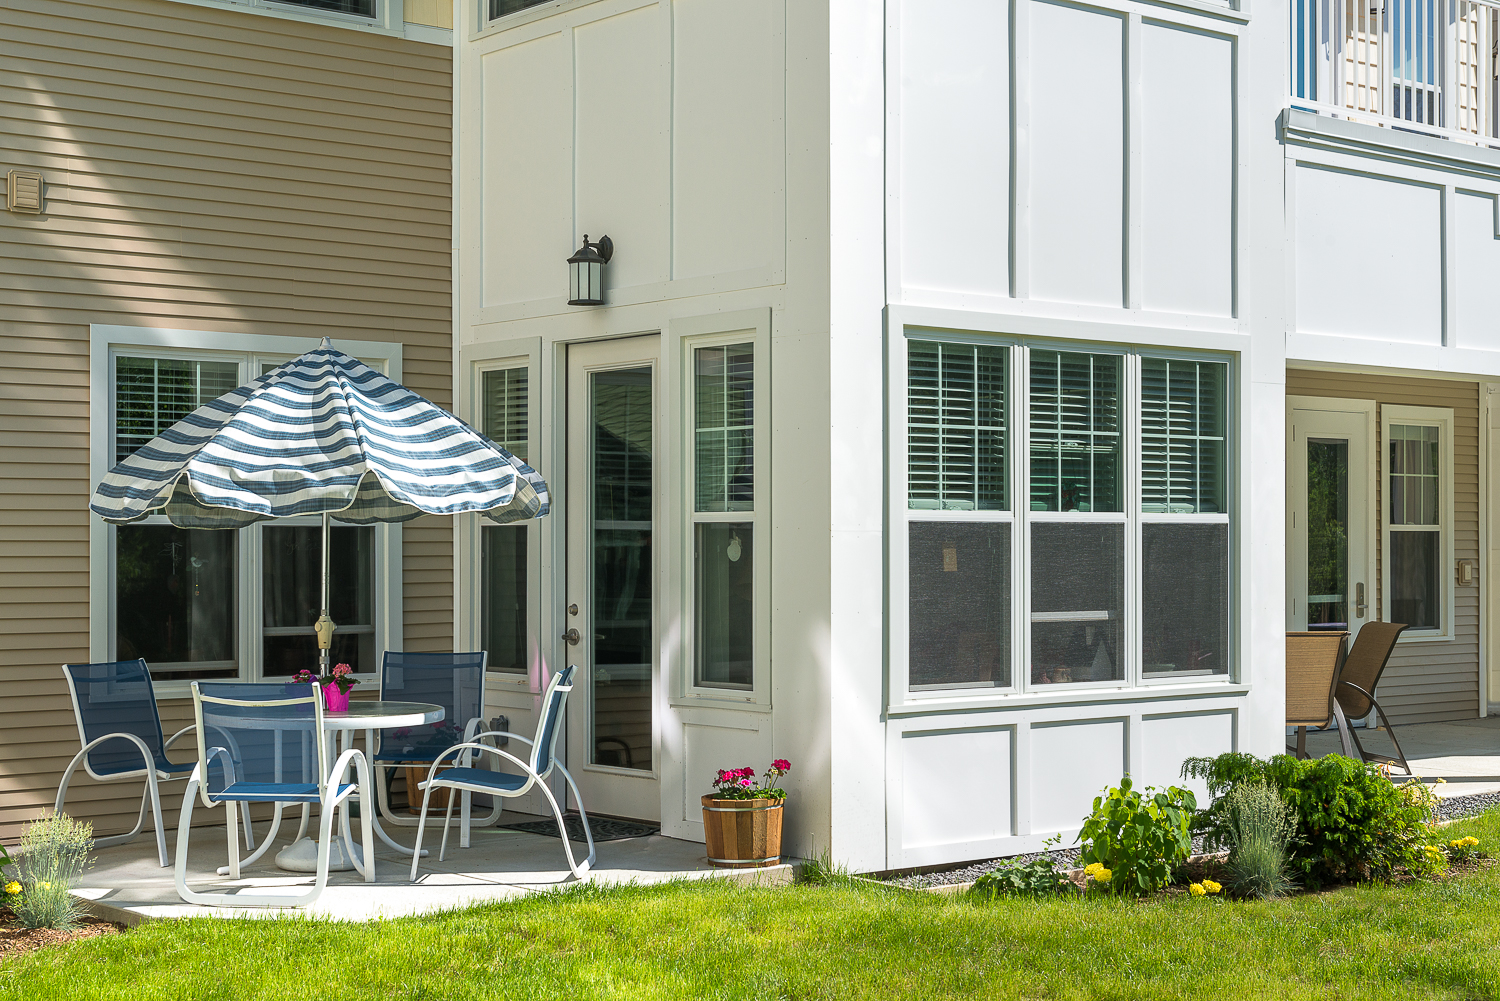 Independent living patio.